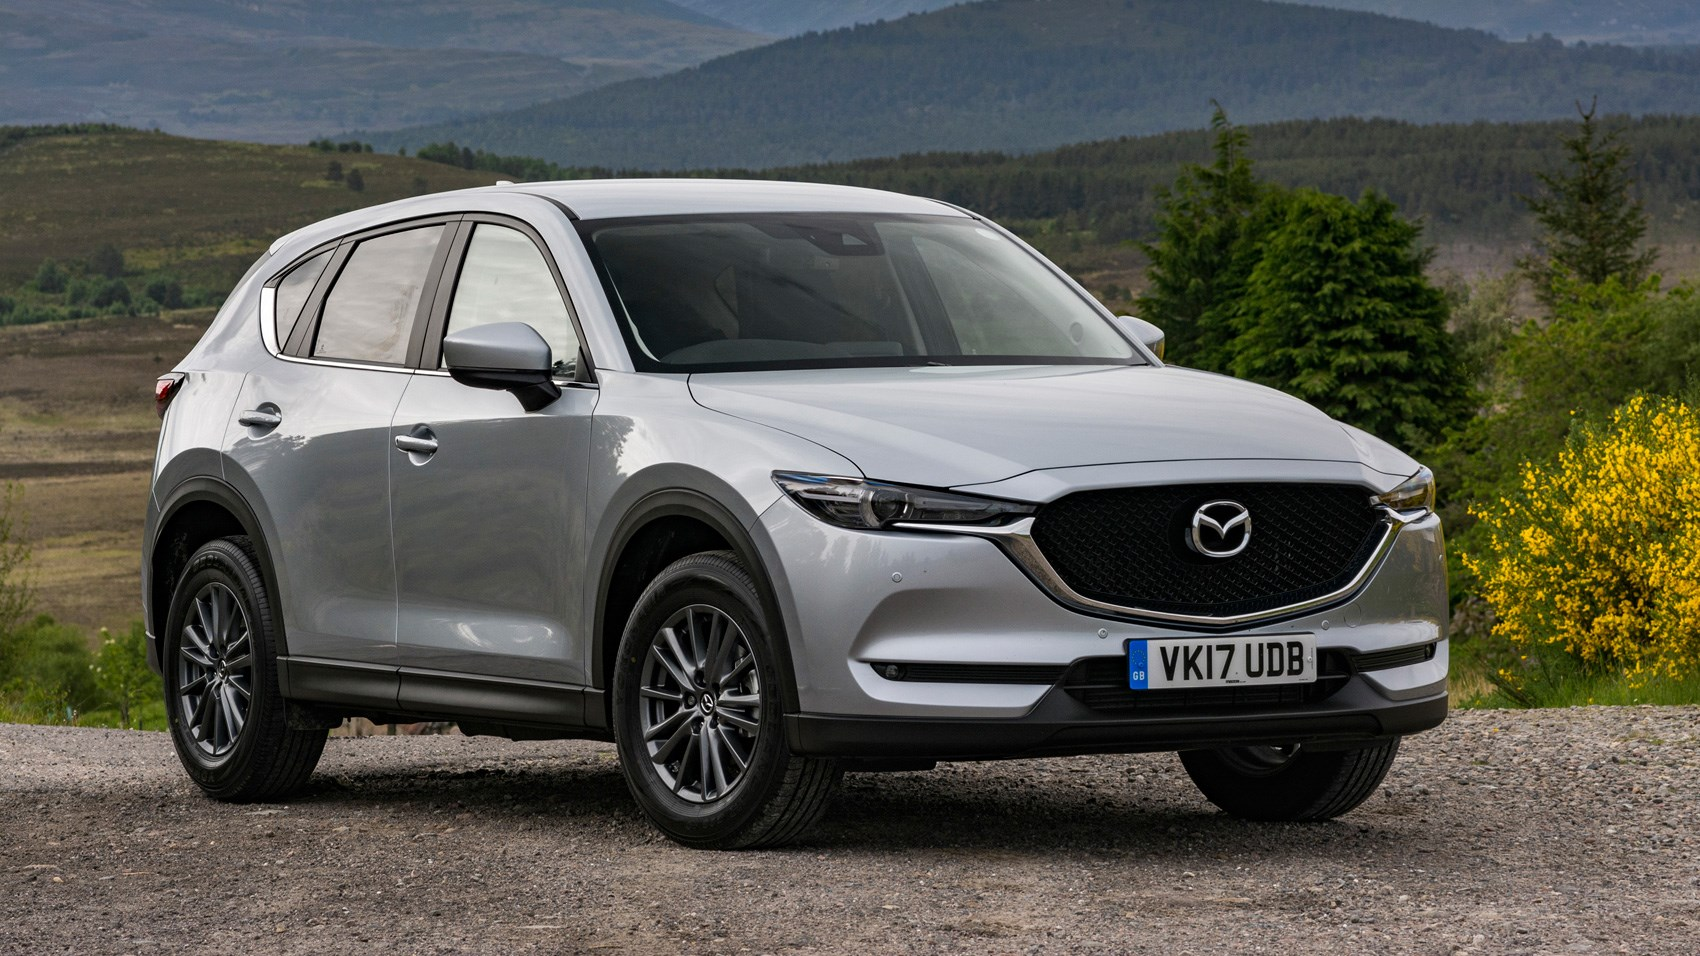 Ignore The Media Sel Bashing You Want A Cx 5 Petrol Engine May Pack Few More Ponies With 163bhp Against 148bhp For Lesser